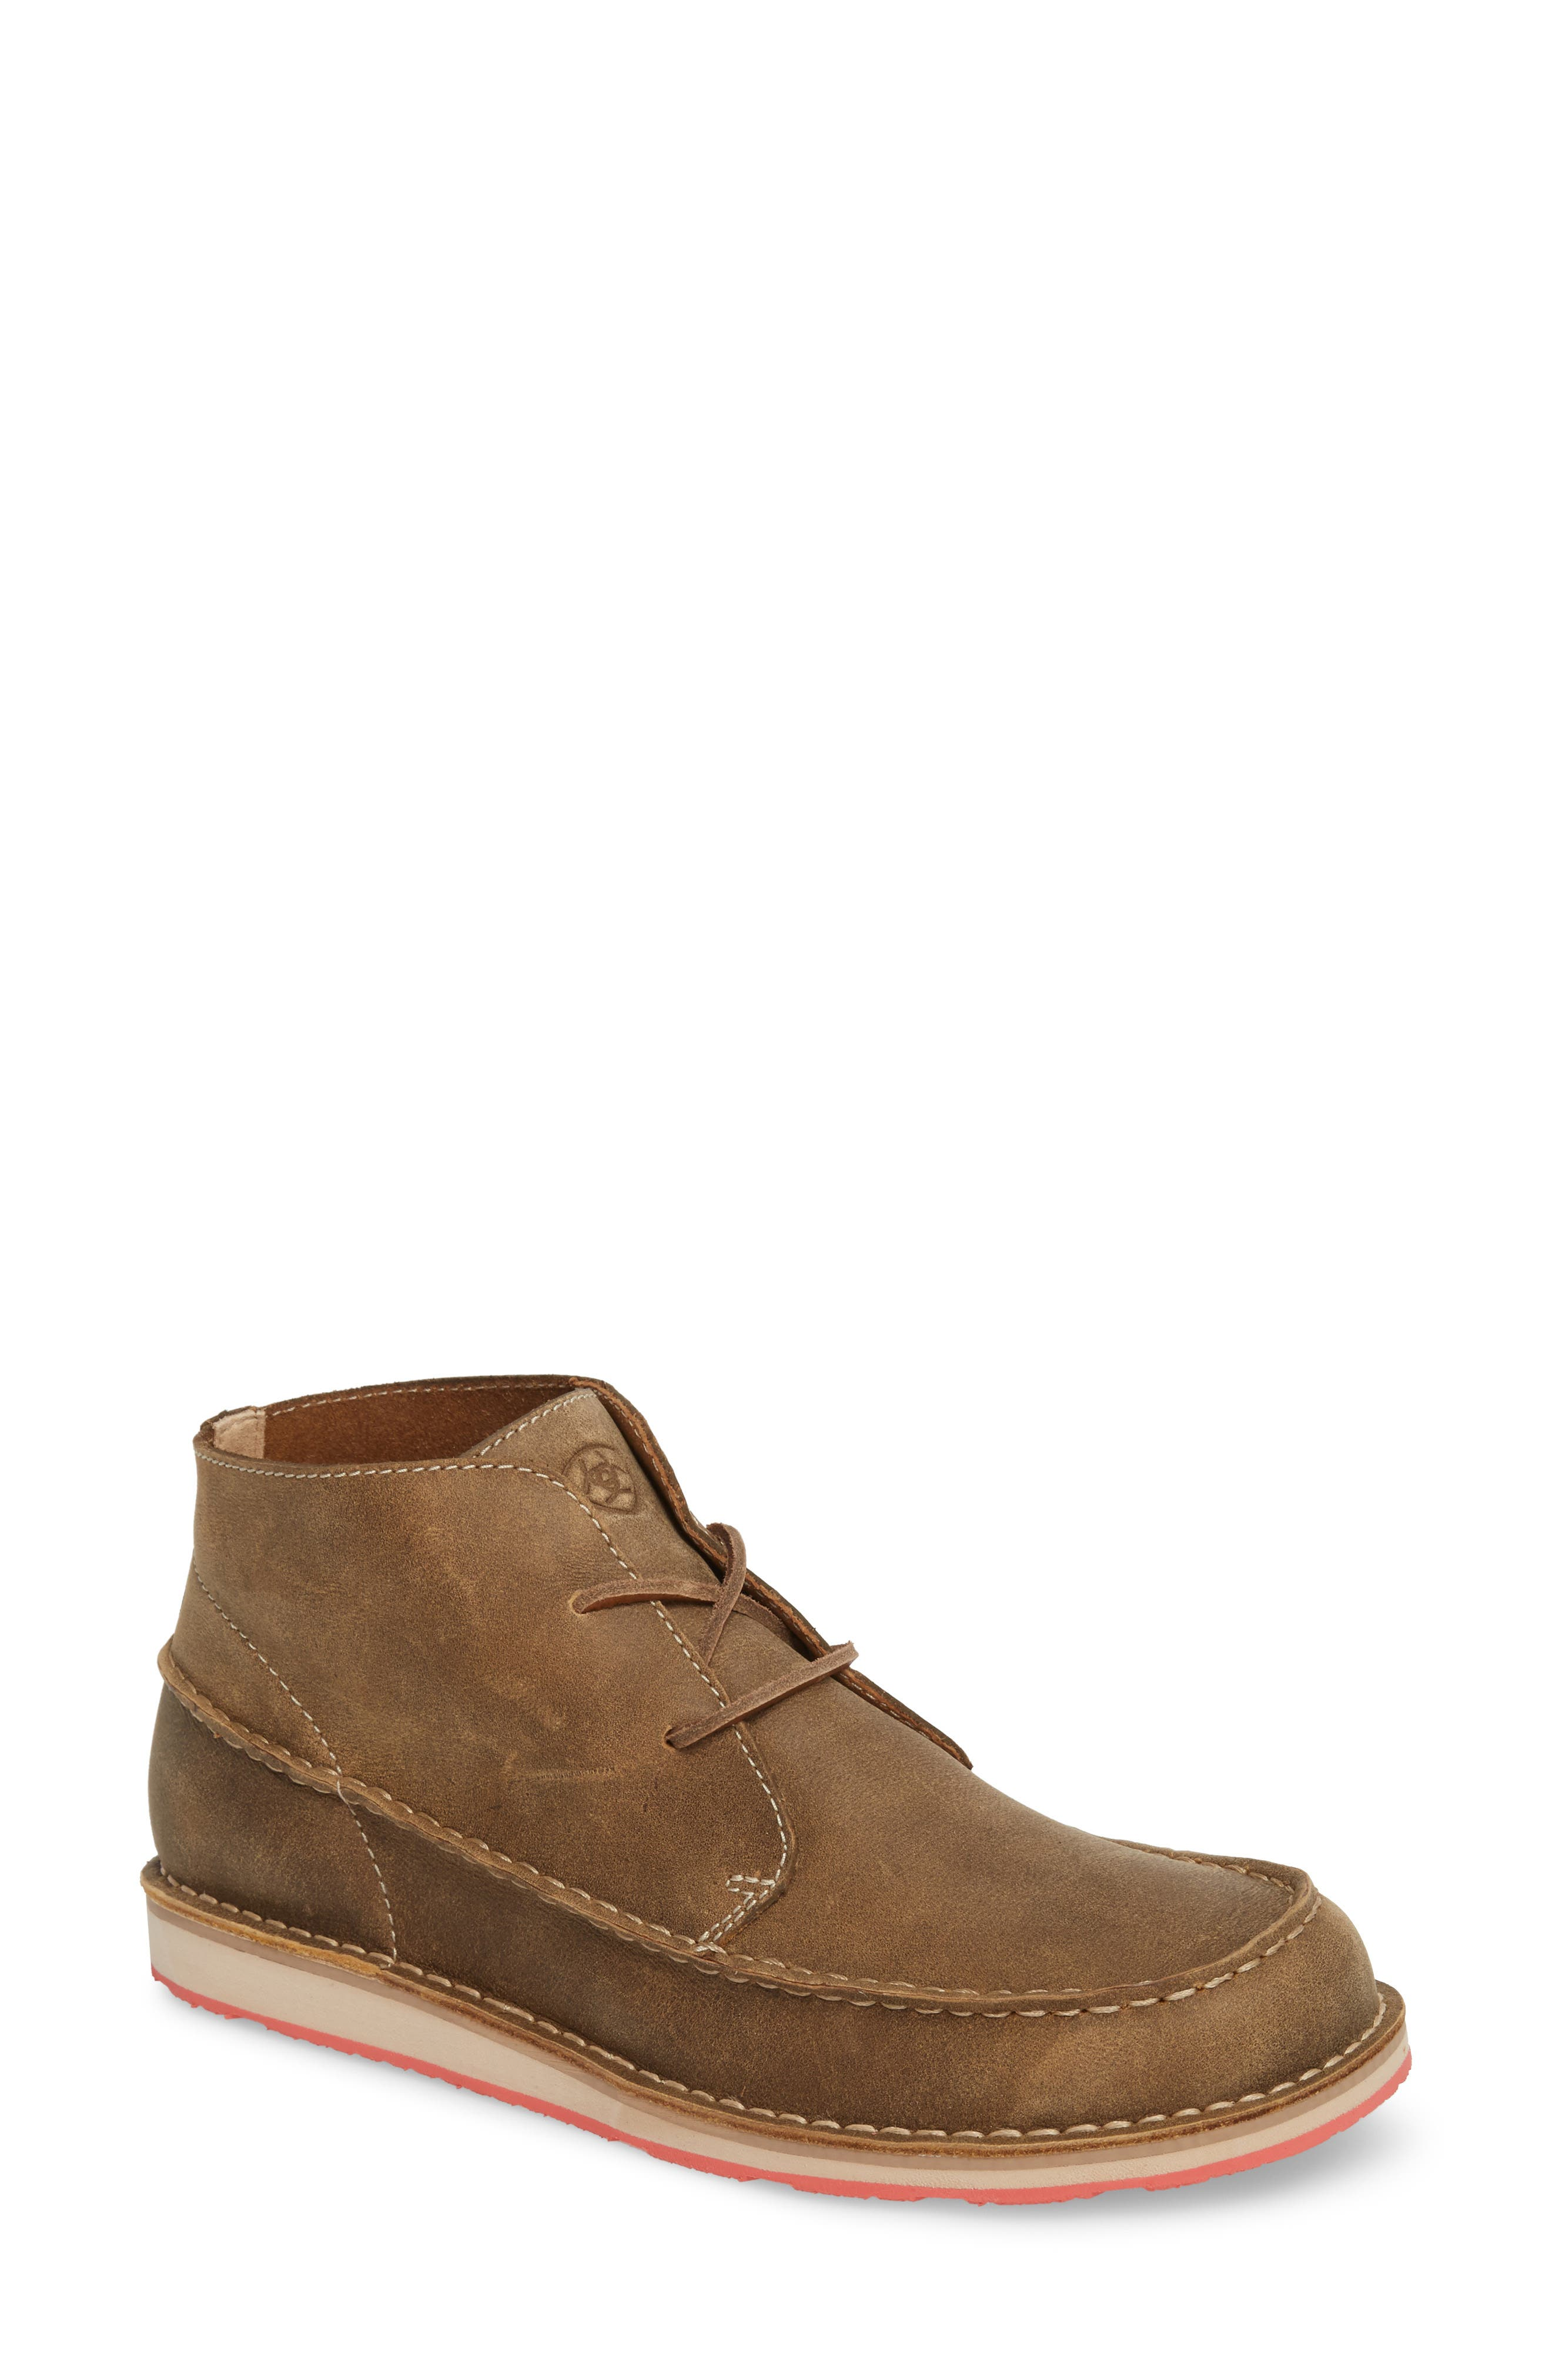 Cruiser Chukka Boot,                         Main,                         color, Lace Brown Bomber Leather